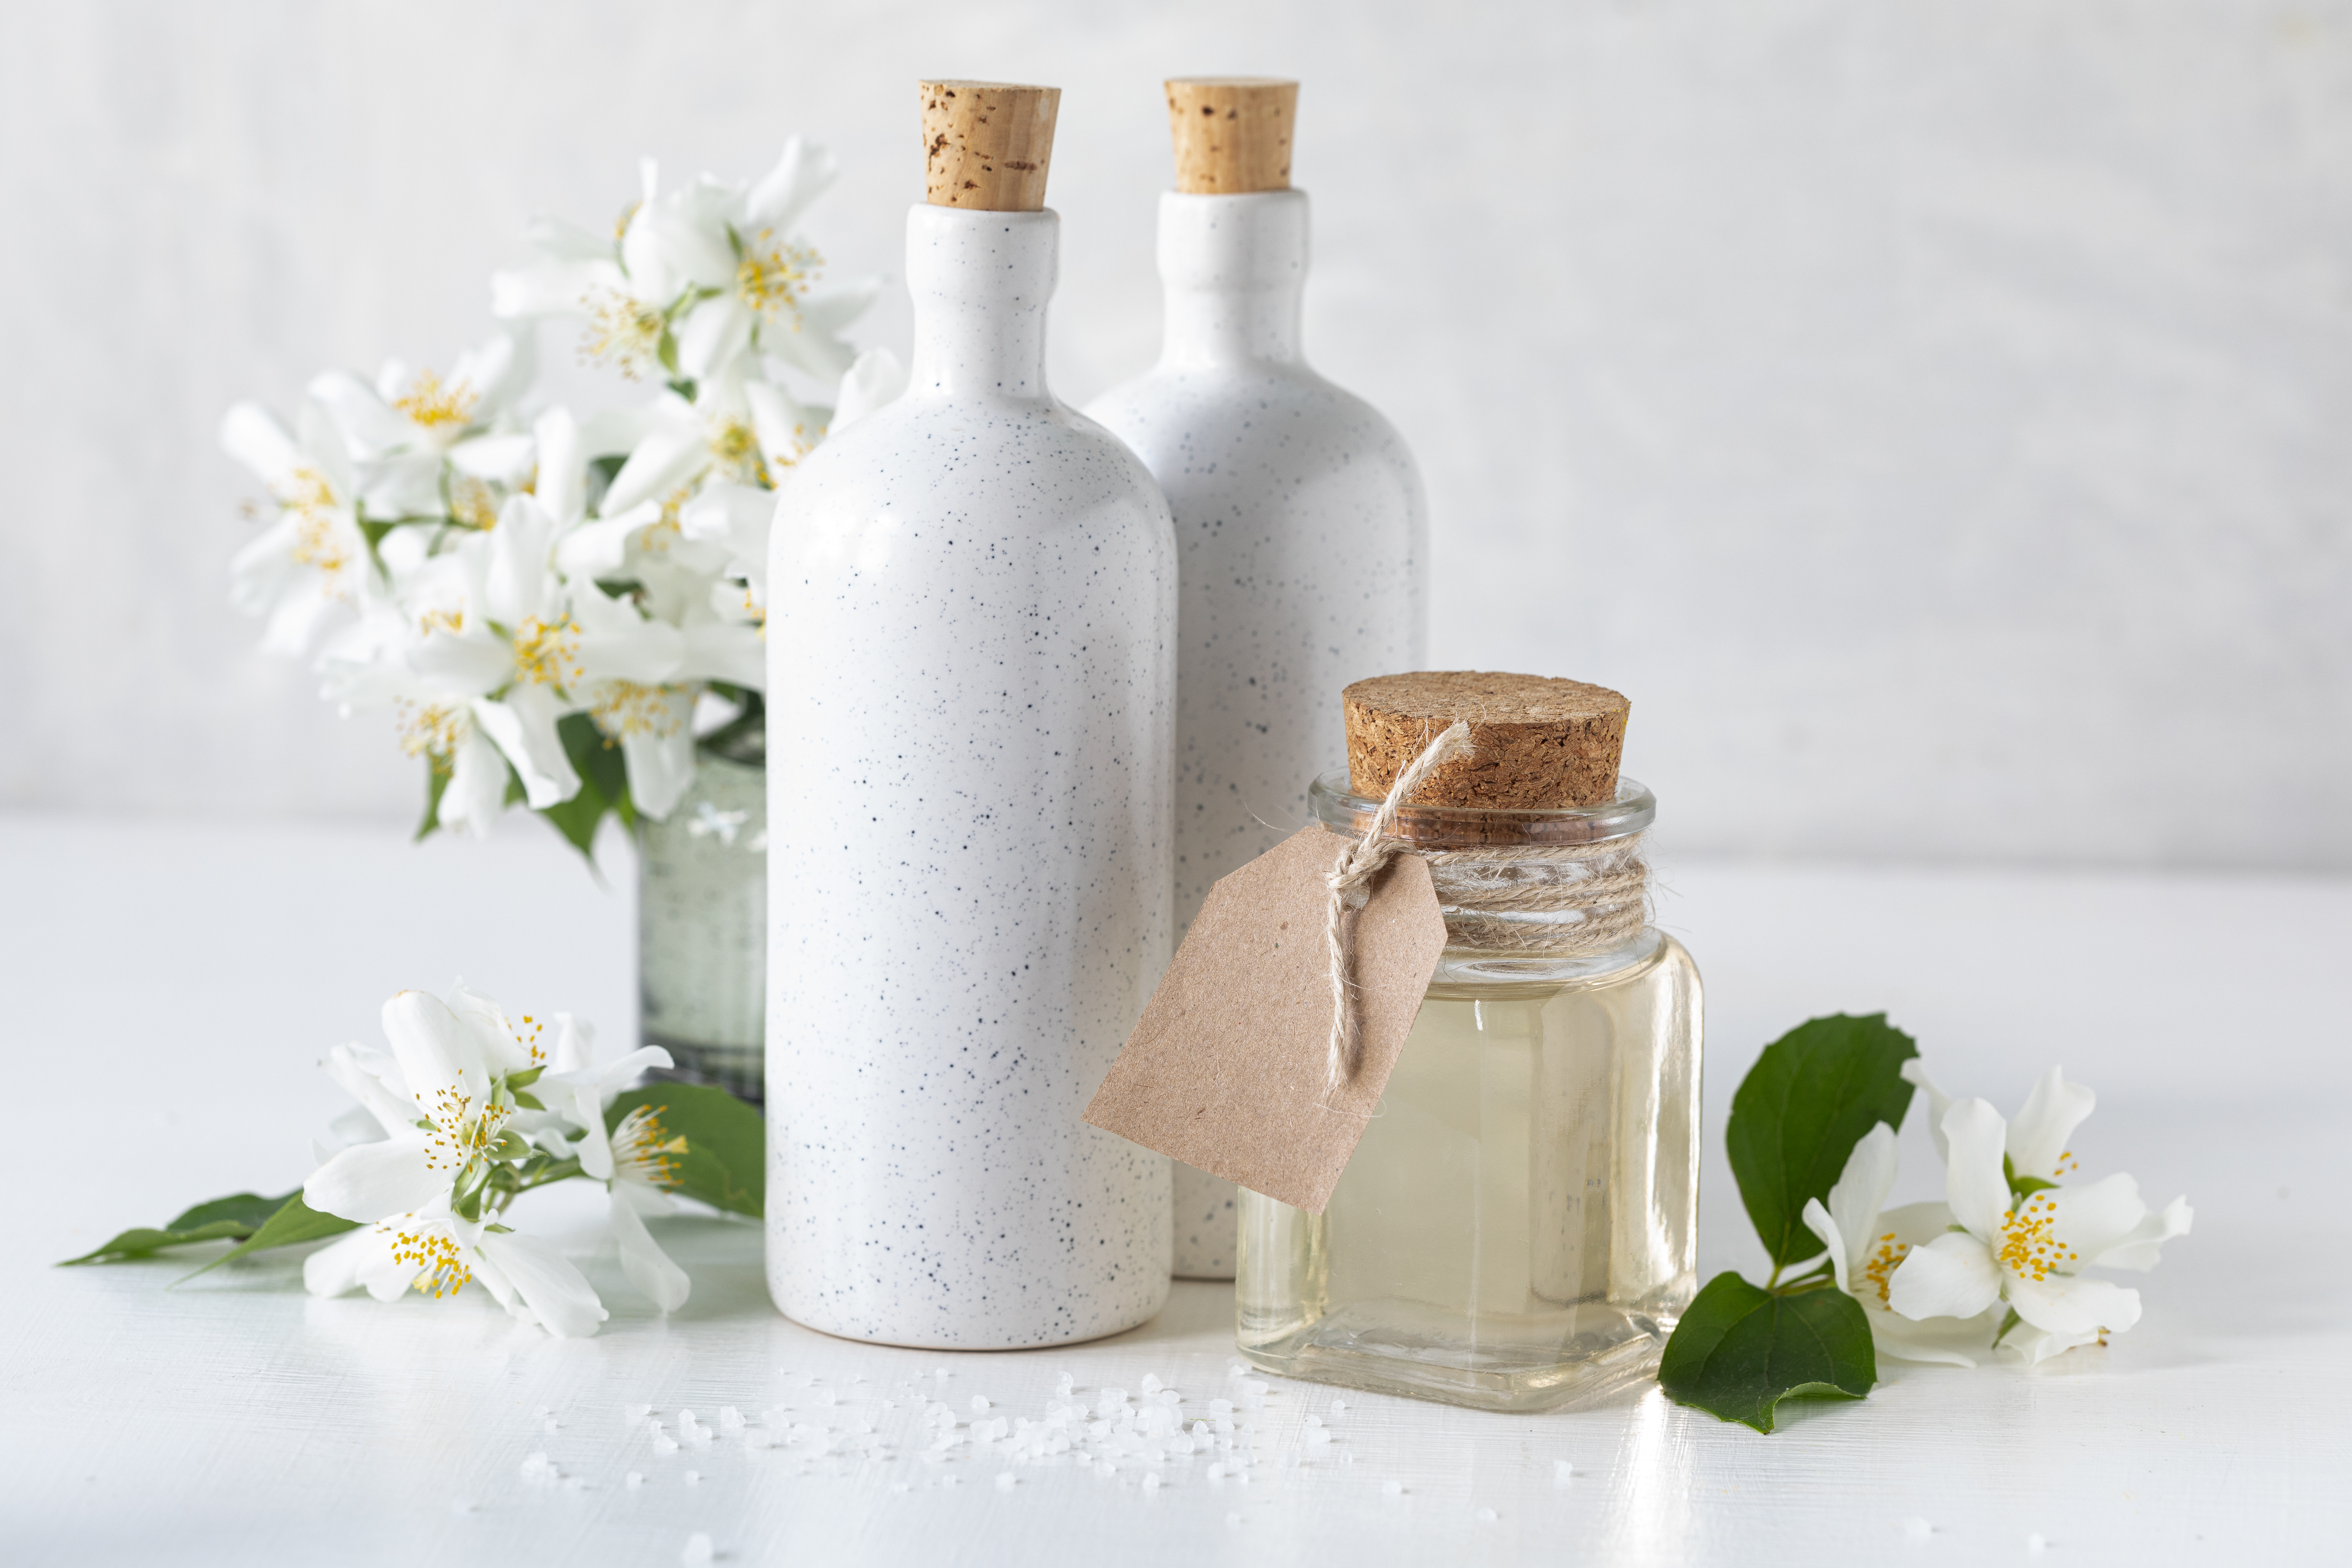 Spa concept with jasmine flowers on a white background. Copy space